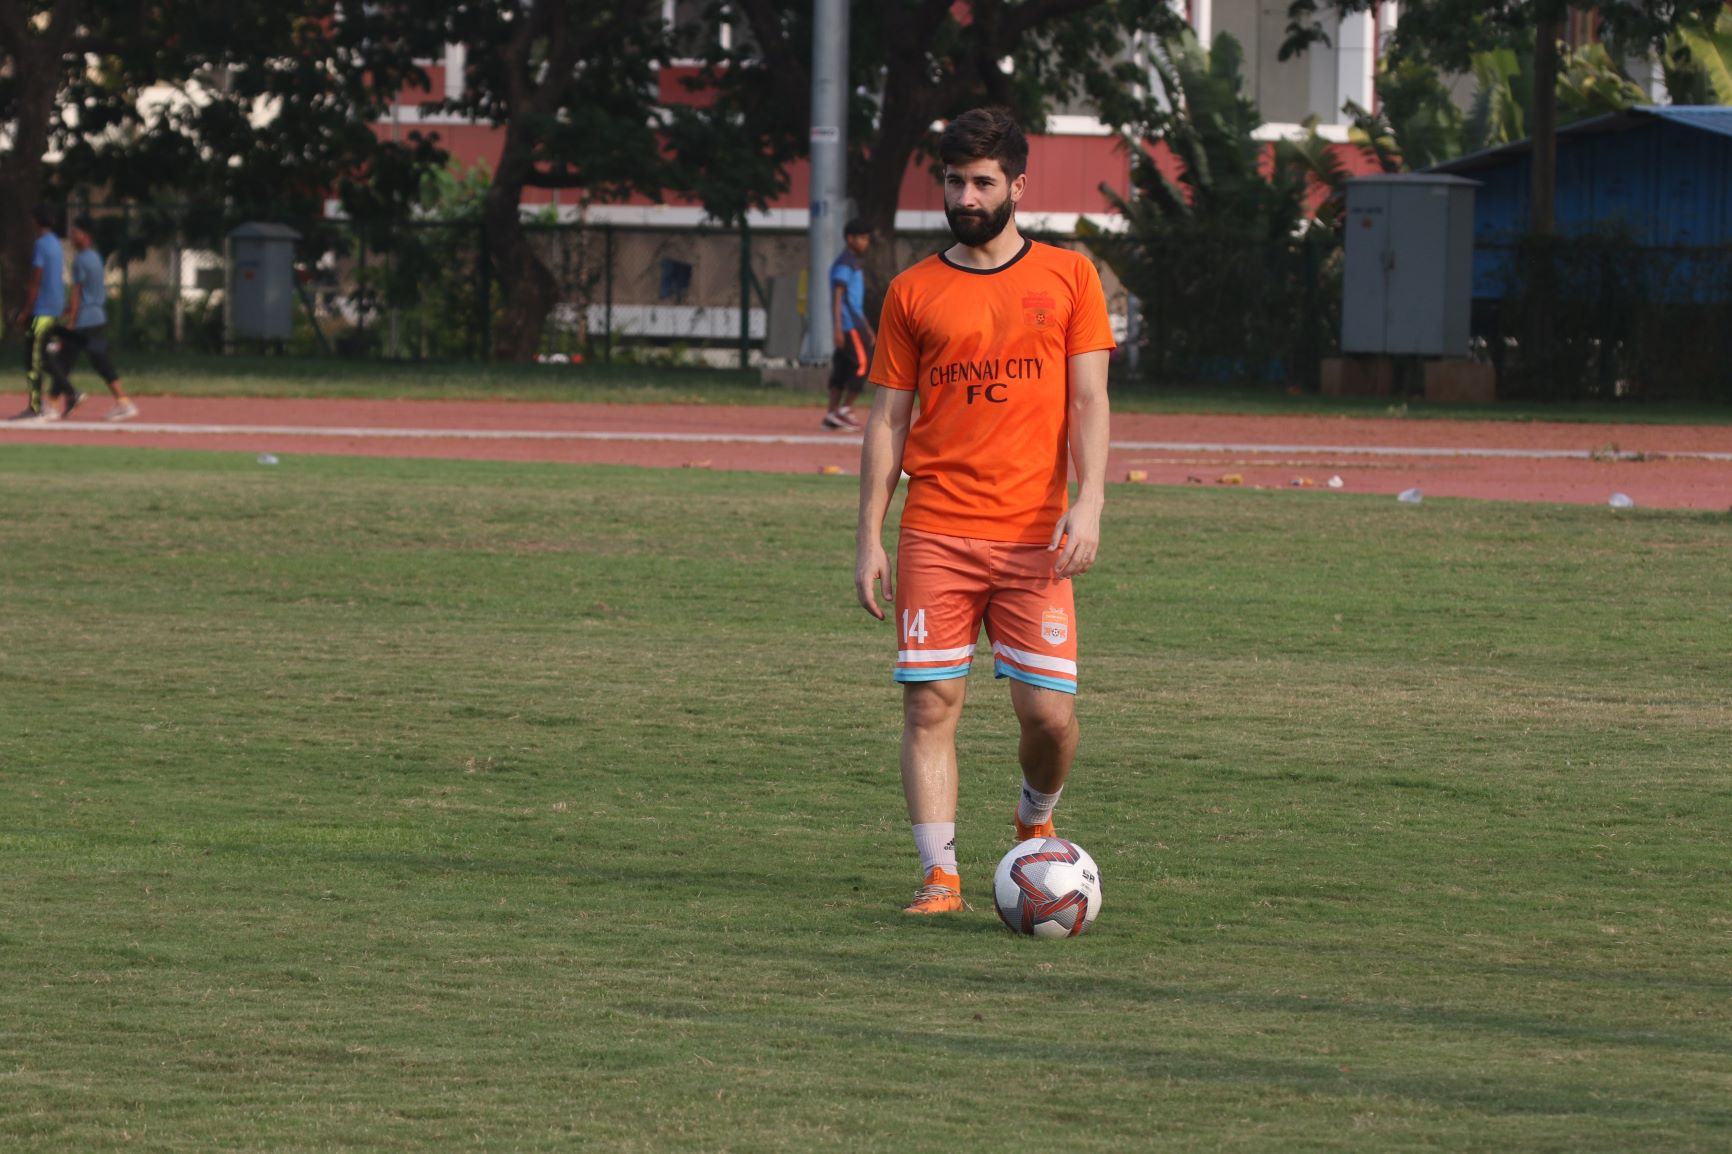 Nestor Gordillo, who was instrumental in Chennai City FC's march to the 2018-19 I-League title, was poached by FC Pune City a few weeks after the season's conclusion.